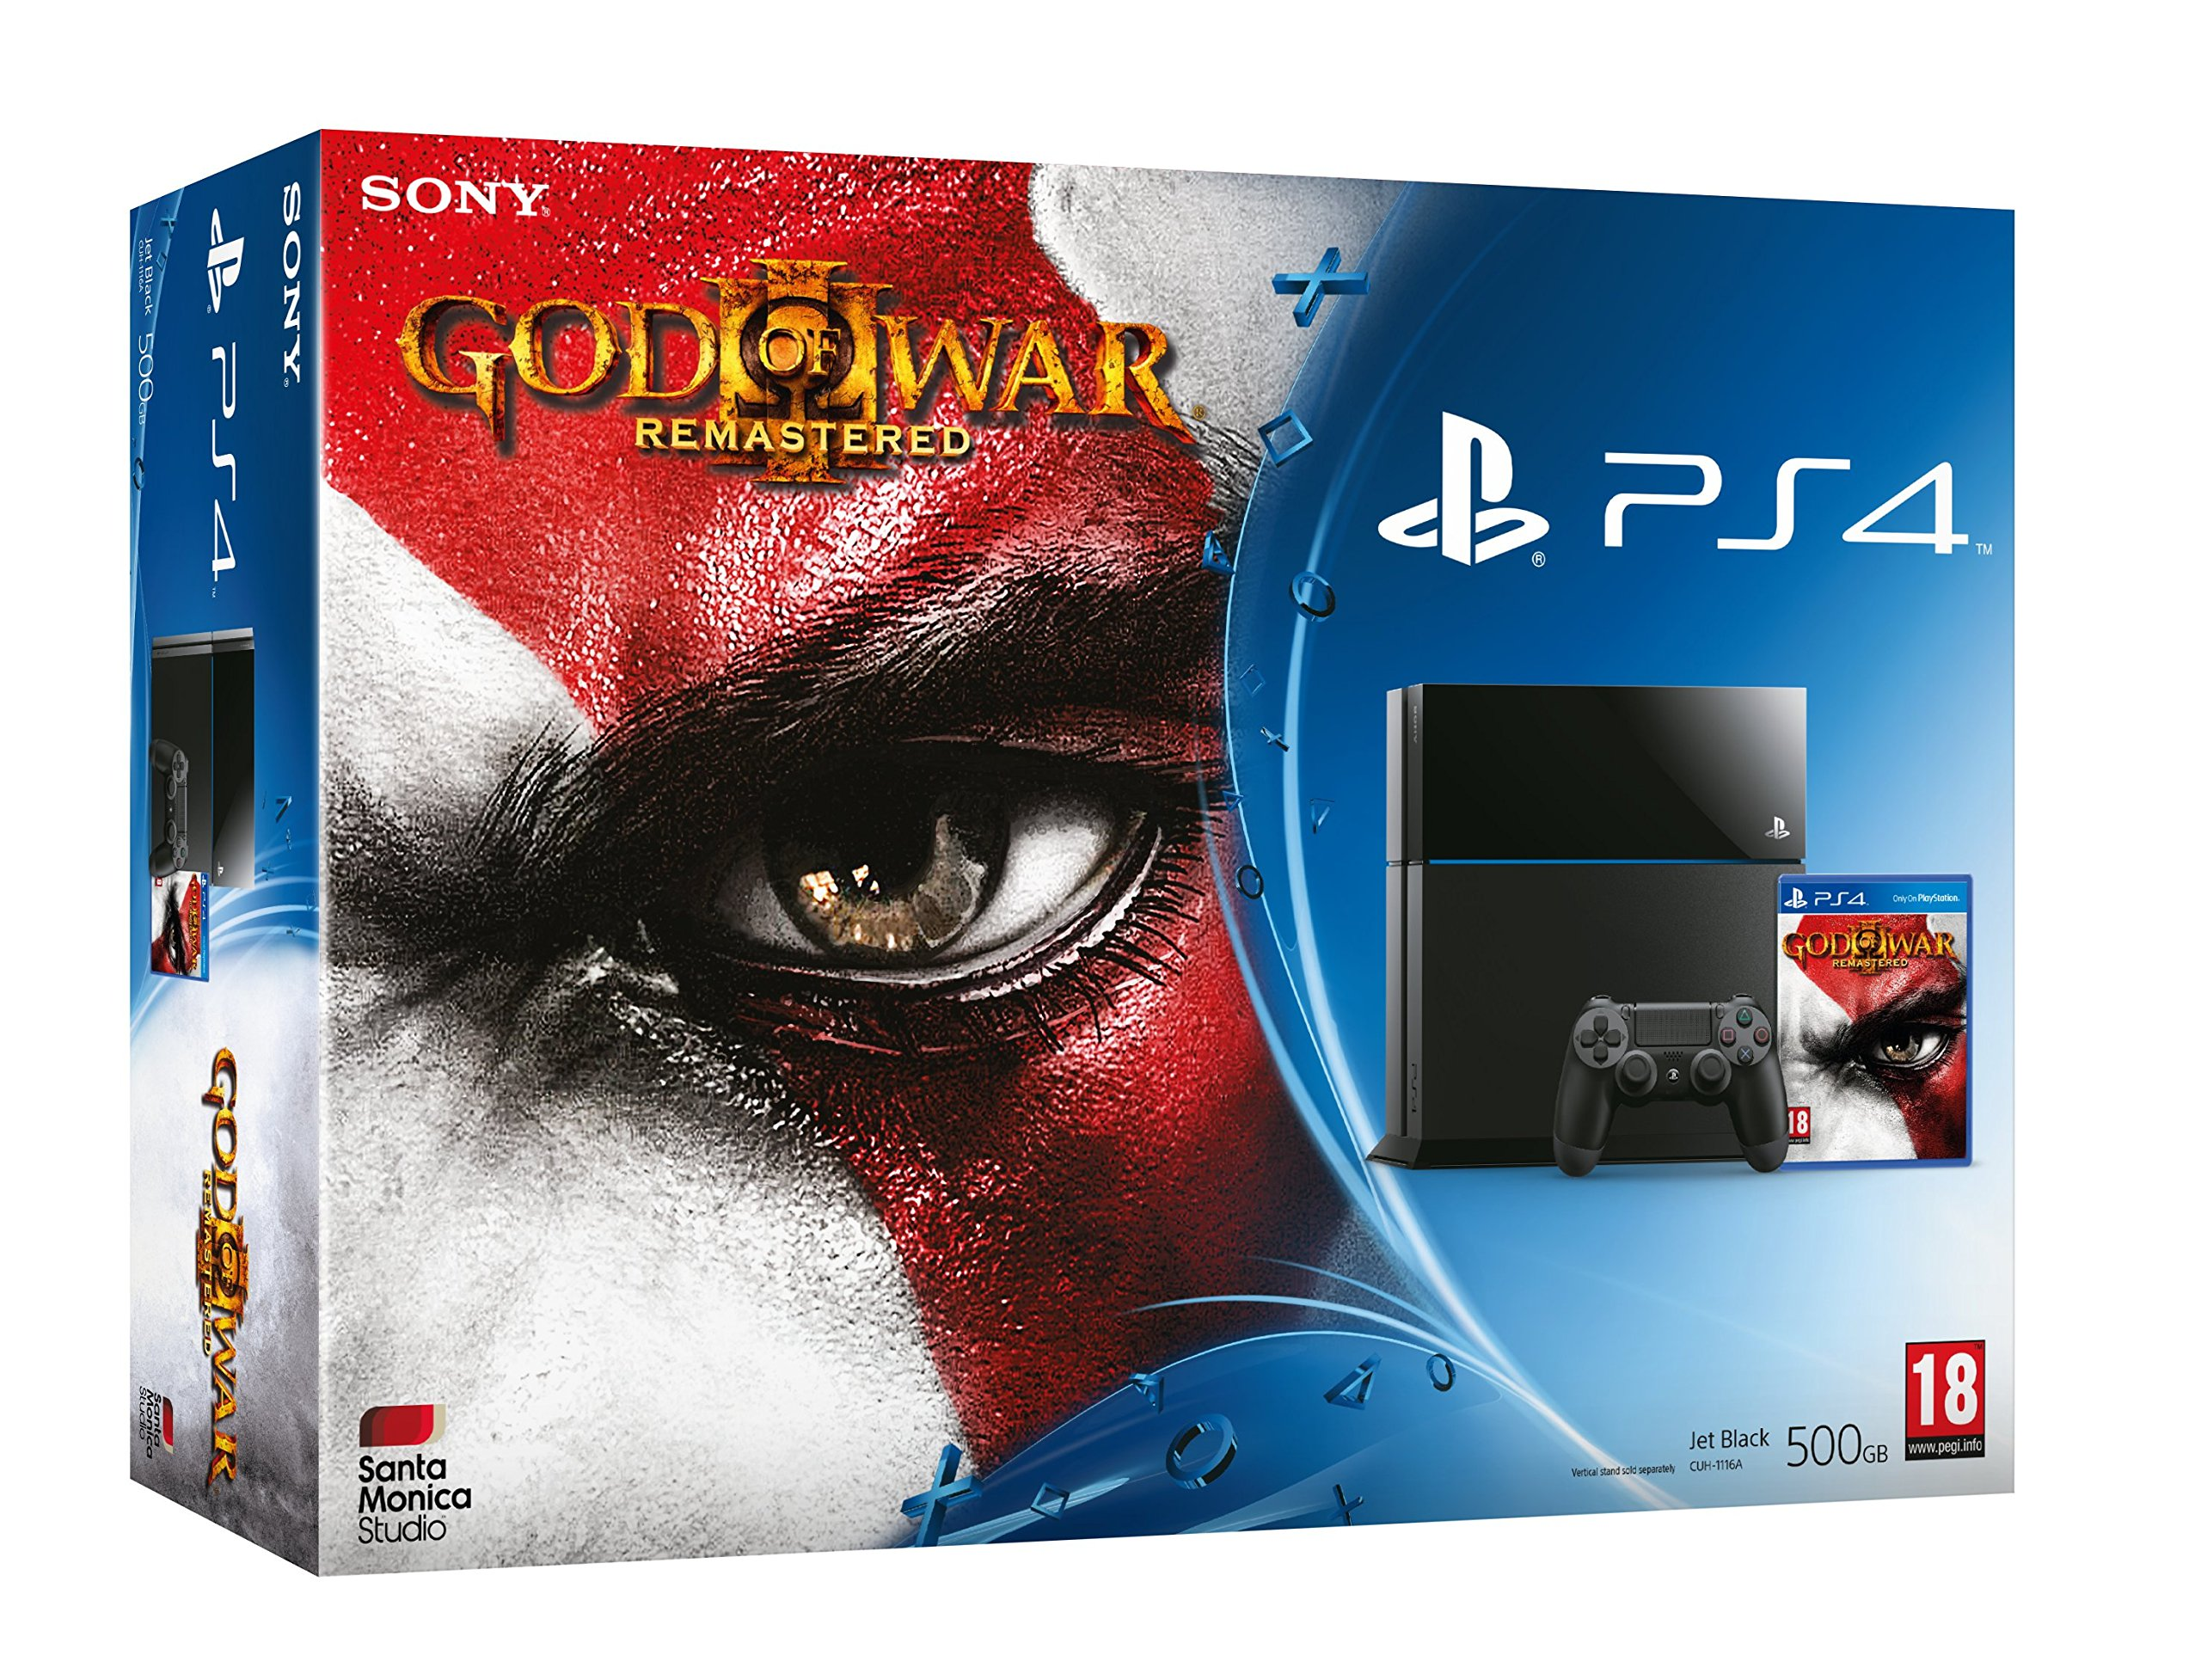 PlayStation 4: Console 500GB B Chassis + God Of War III